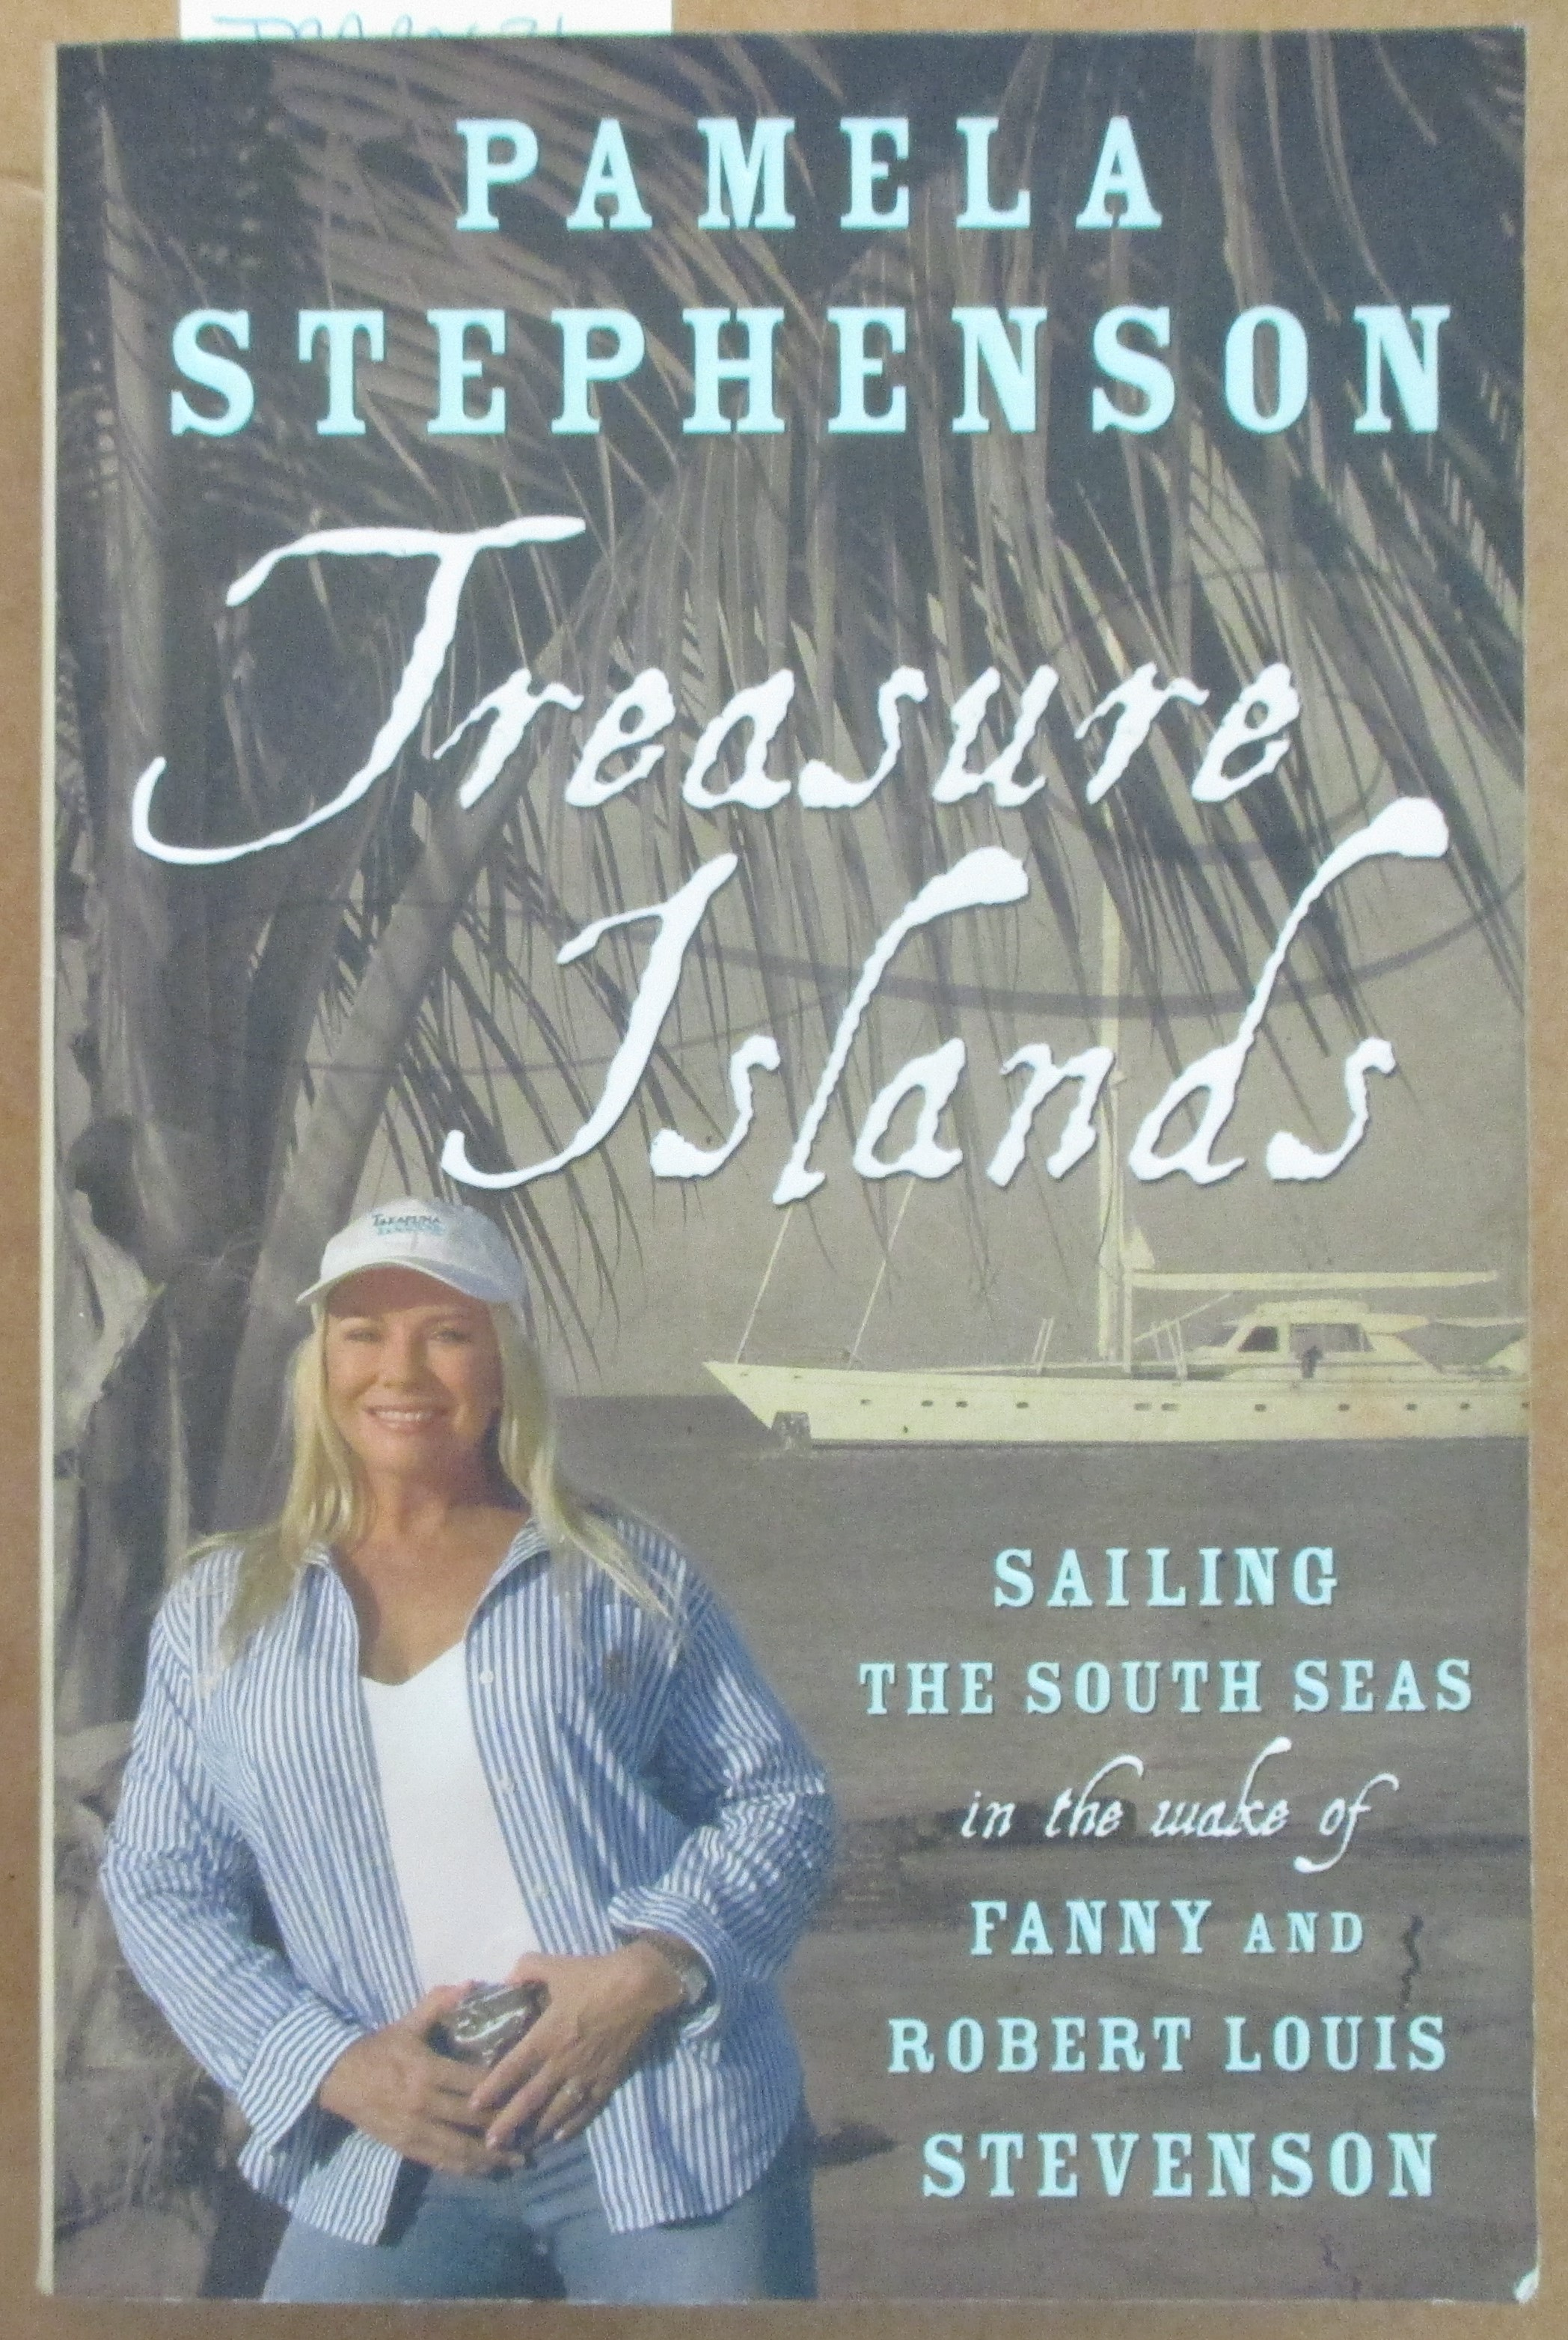 Image for Treasure Islands: Sailing the South Seas in the Wake of Fanny and Robert Louis Stevenson